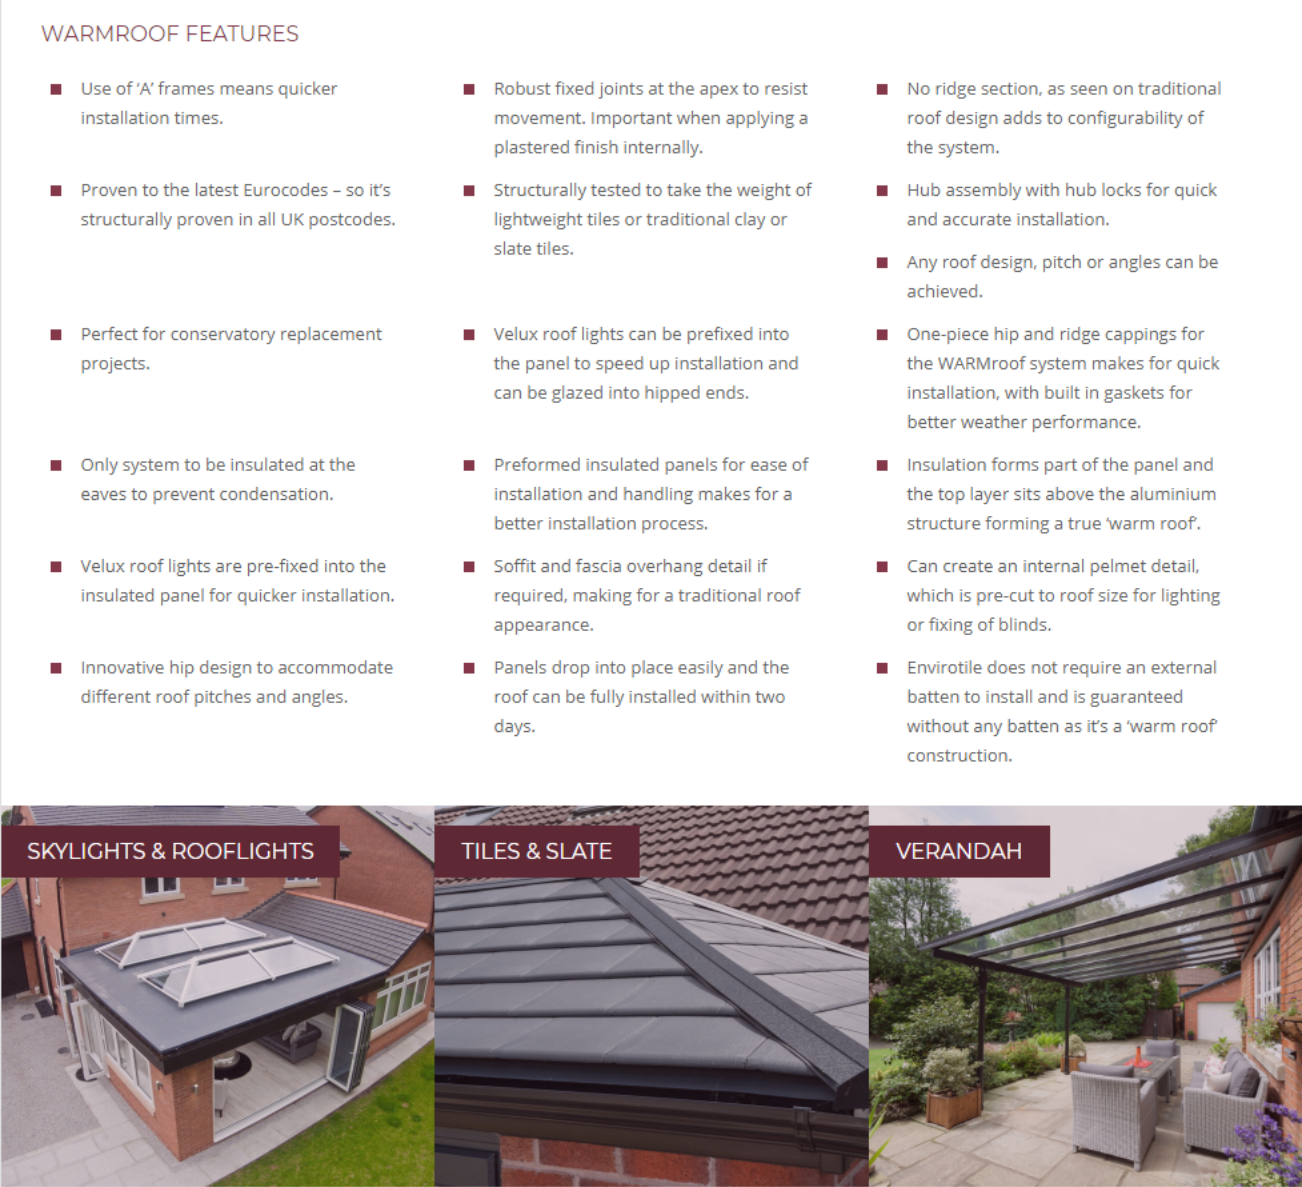 Compare Tiled Conservatory Roofs Warmroof 2 Conservatory Roof Tiled Conservatory Roof Roof